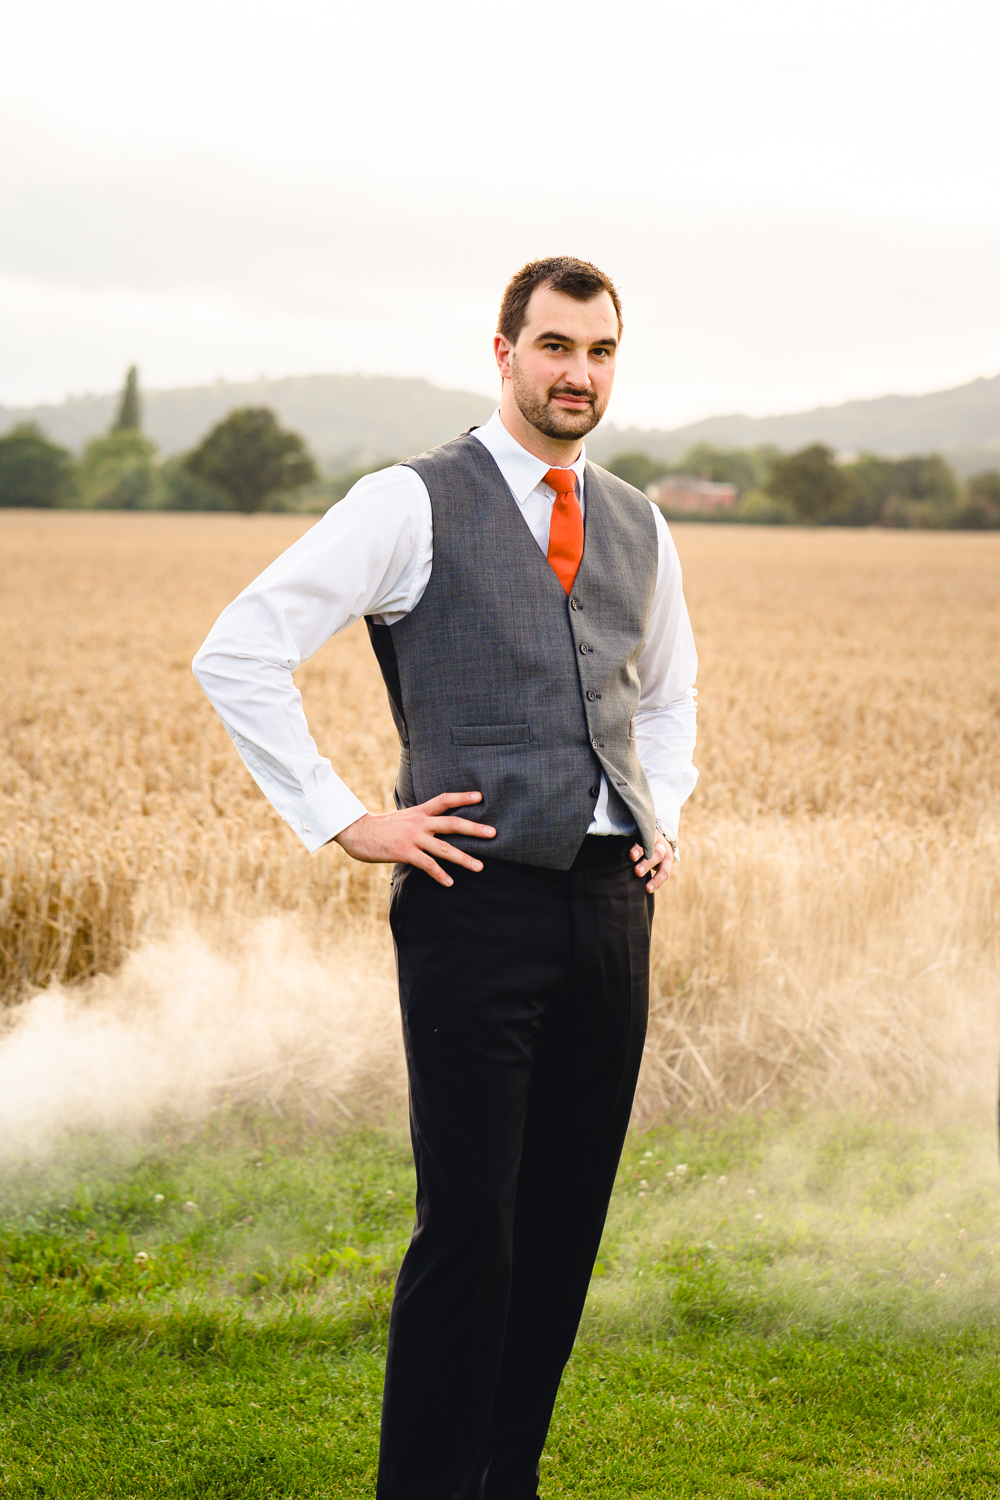 Groom Suit Orange Tie Waistcoat Birtsmorton Court Wedding The Dignums